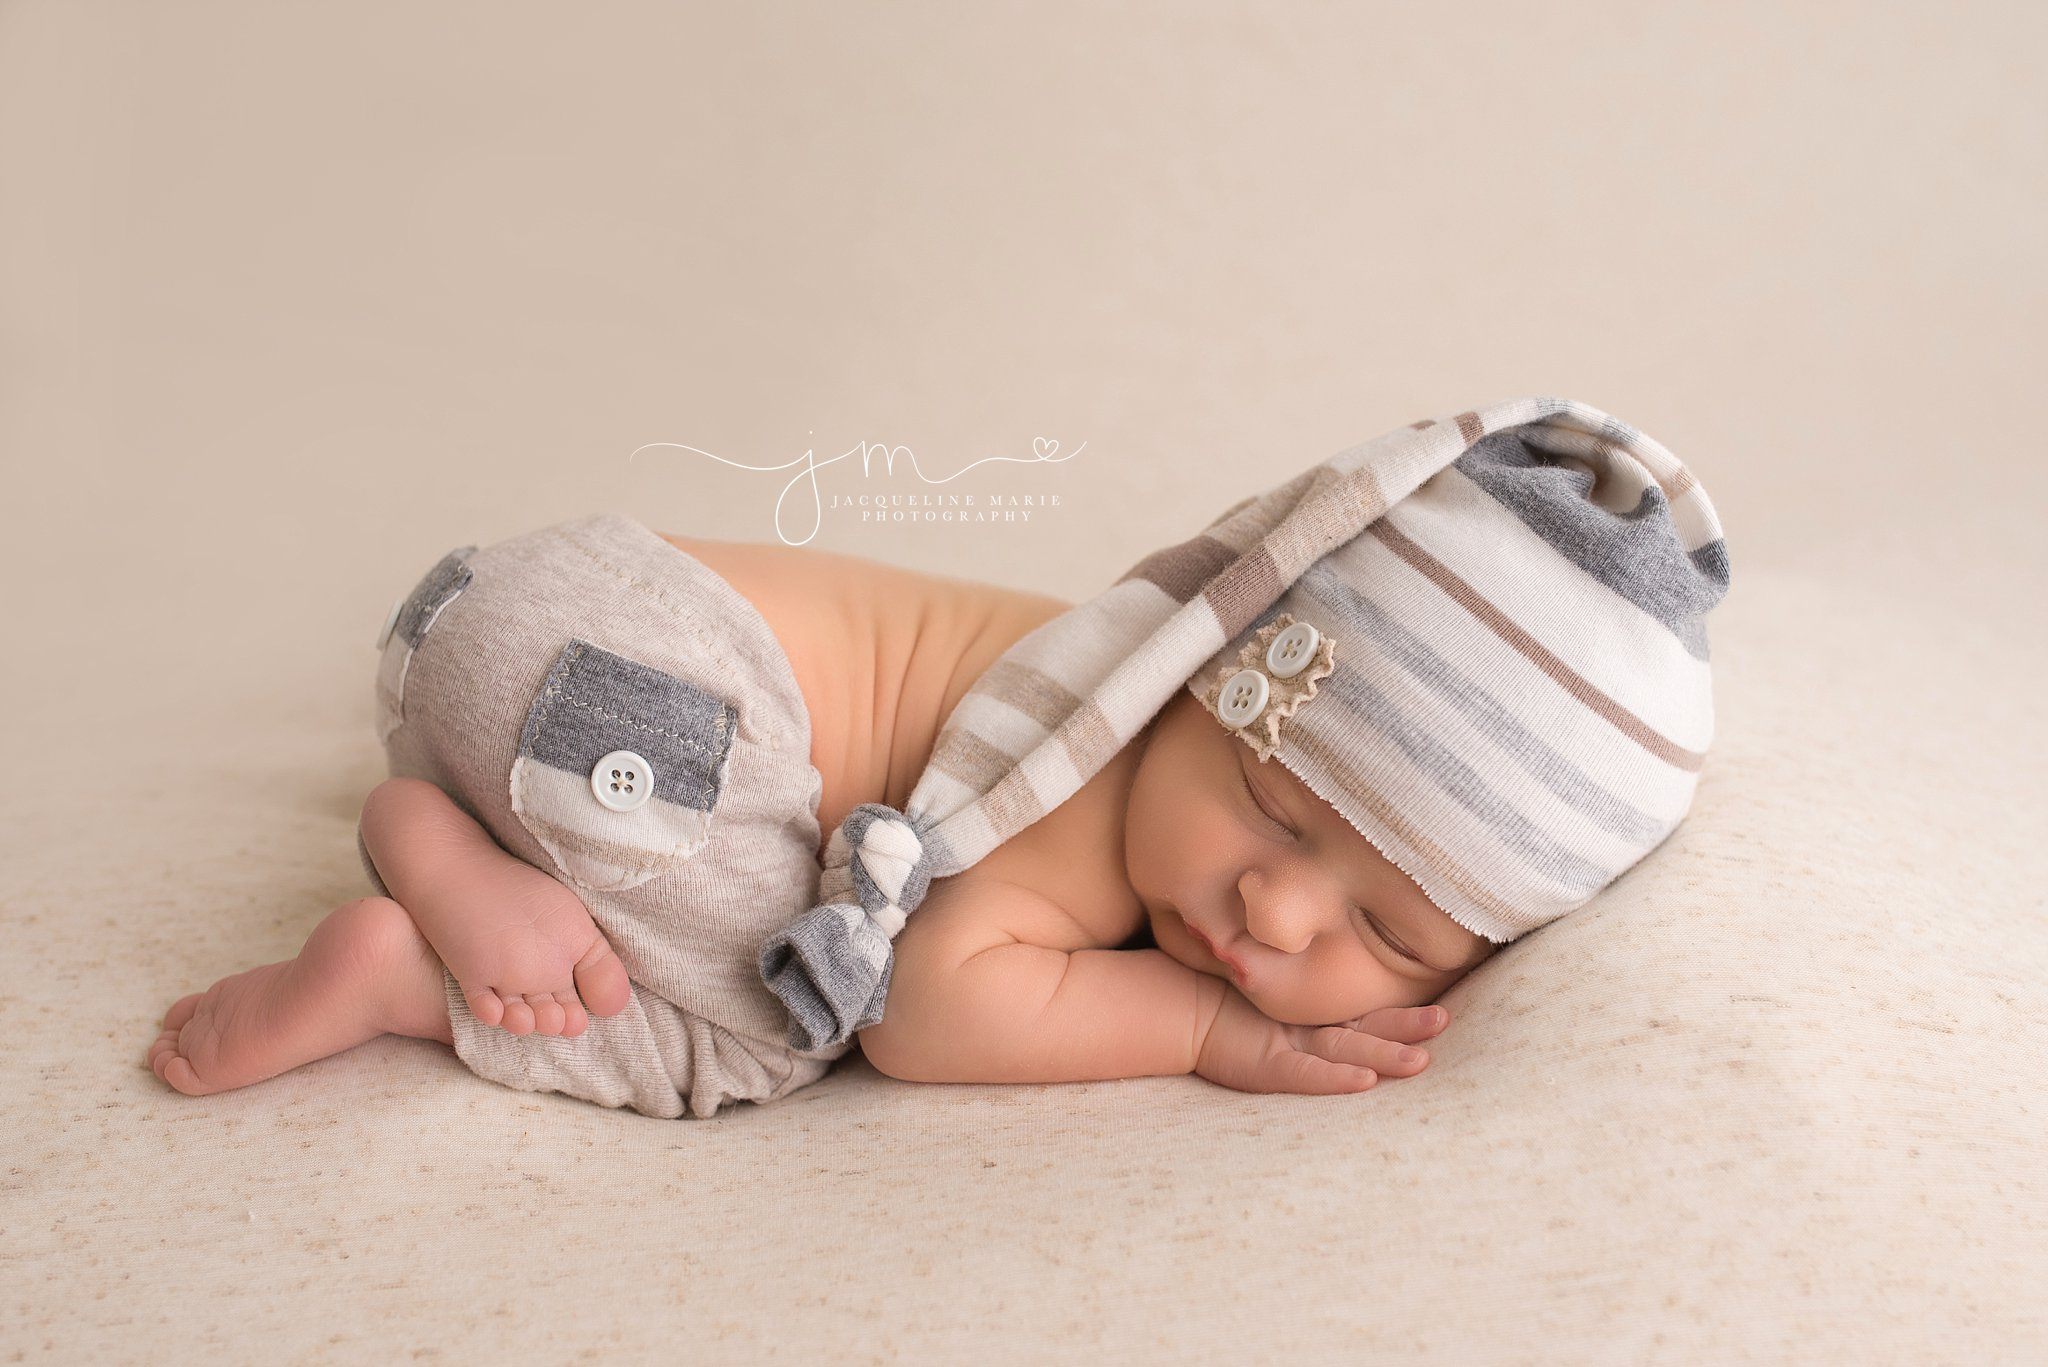 Columbus Ohio newborn photographer features portrait of sleeping baby boy with focus on toes and feet